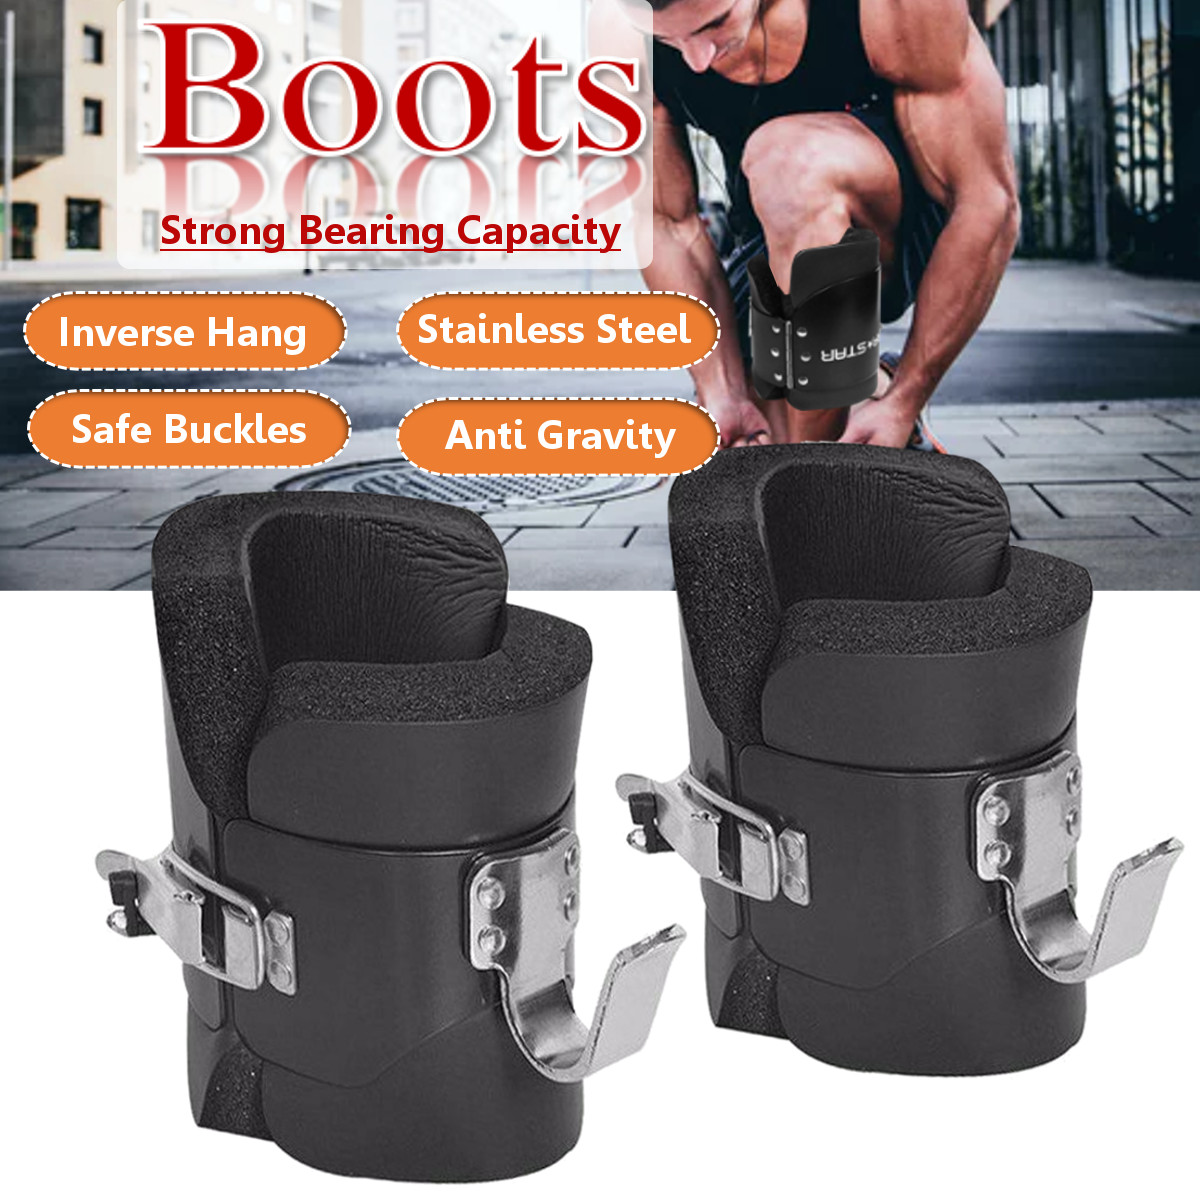 Fitness 1 Pair Anti Gravity Inversion Boots Therapy Spine Ab Chin Up Black New